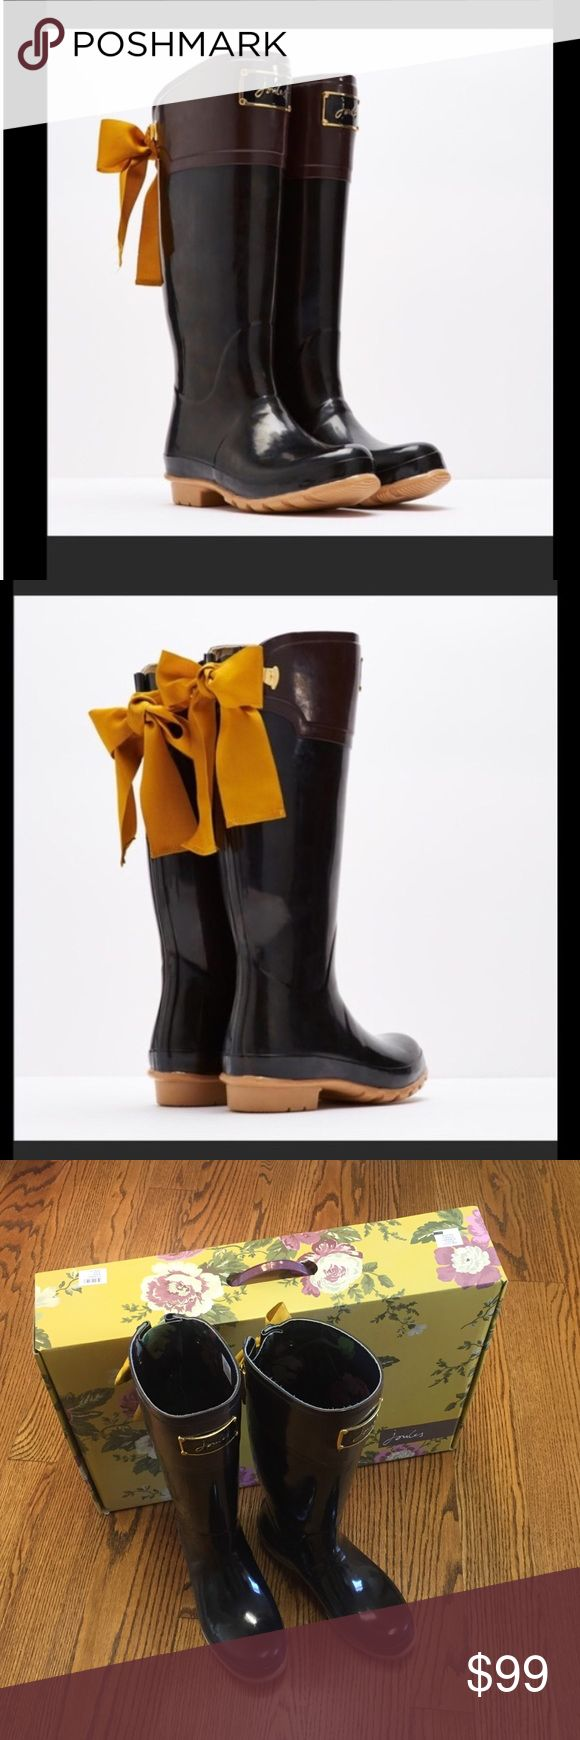 Joules EVERDON black brown bow wellies boots 6 8 Mustard yellow grosgrain ribbon bows at back of calves - worn once! Like new! Joules Shoes Winter & Rain Boots